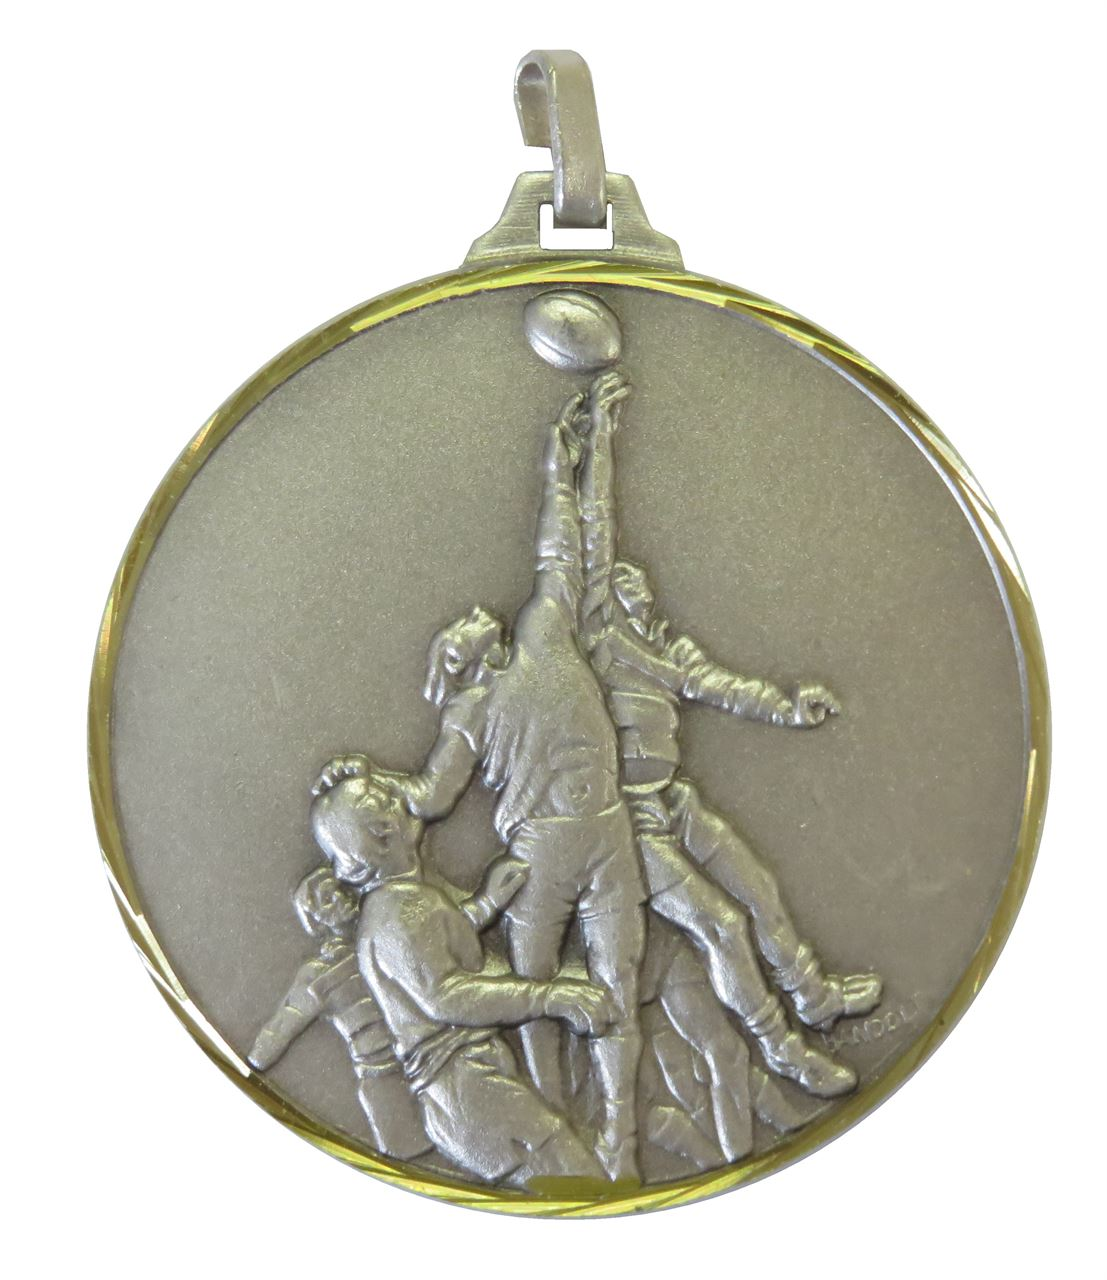 Silver Faceted Rugby Lineout Medal (size: 42mm and 52mm) - 281F